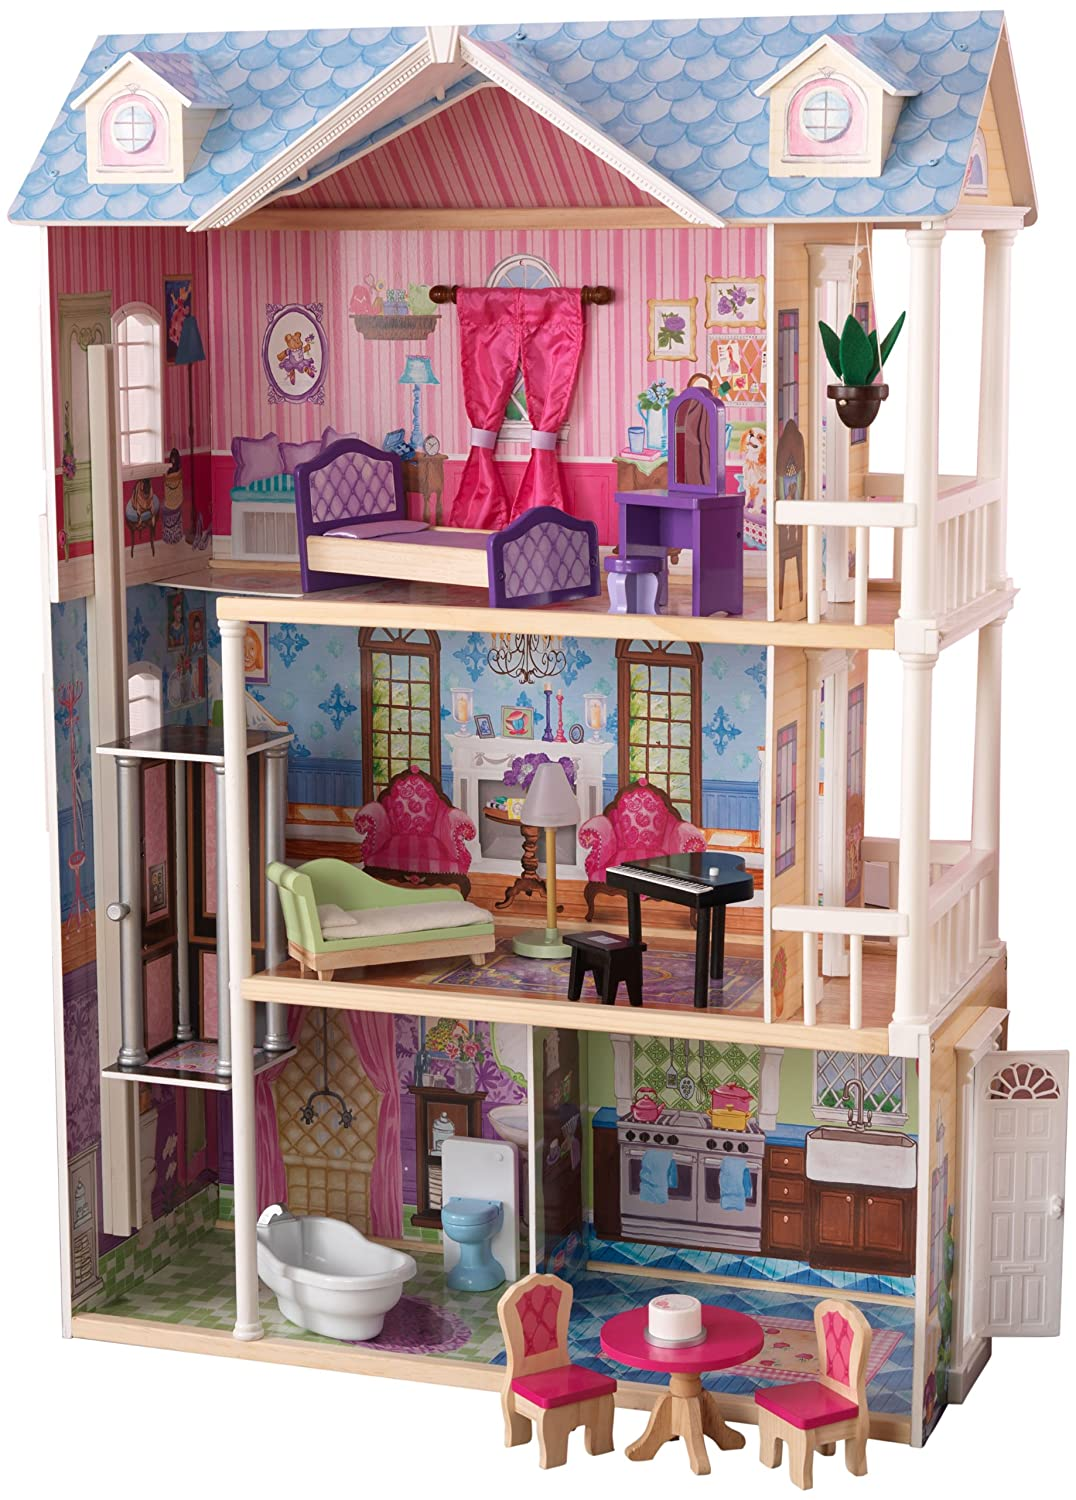 3 Bedroom Floor Plans Best Dollhouses For Little Girls Trying Out Toys